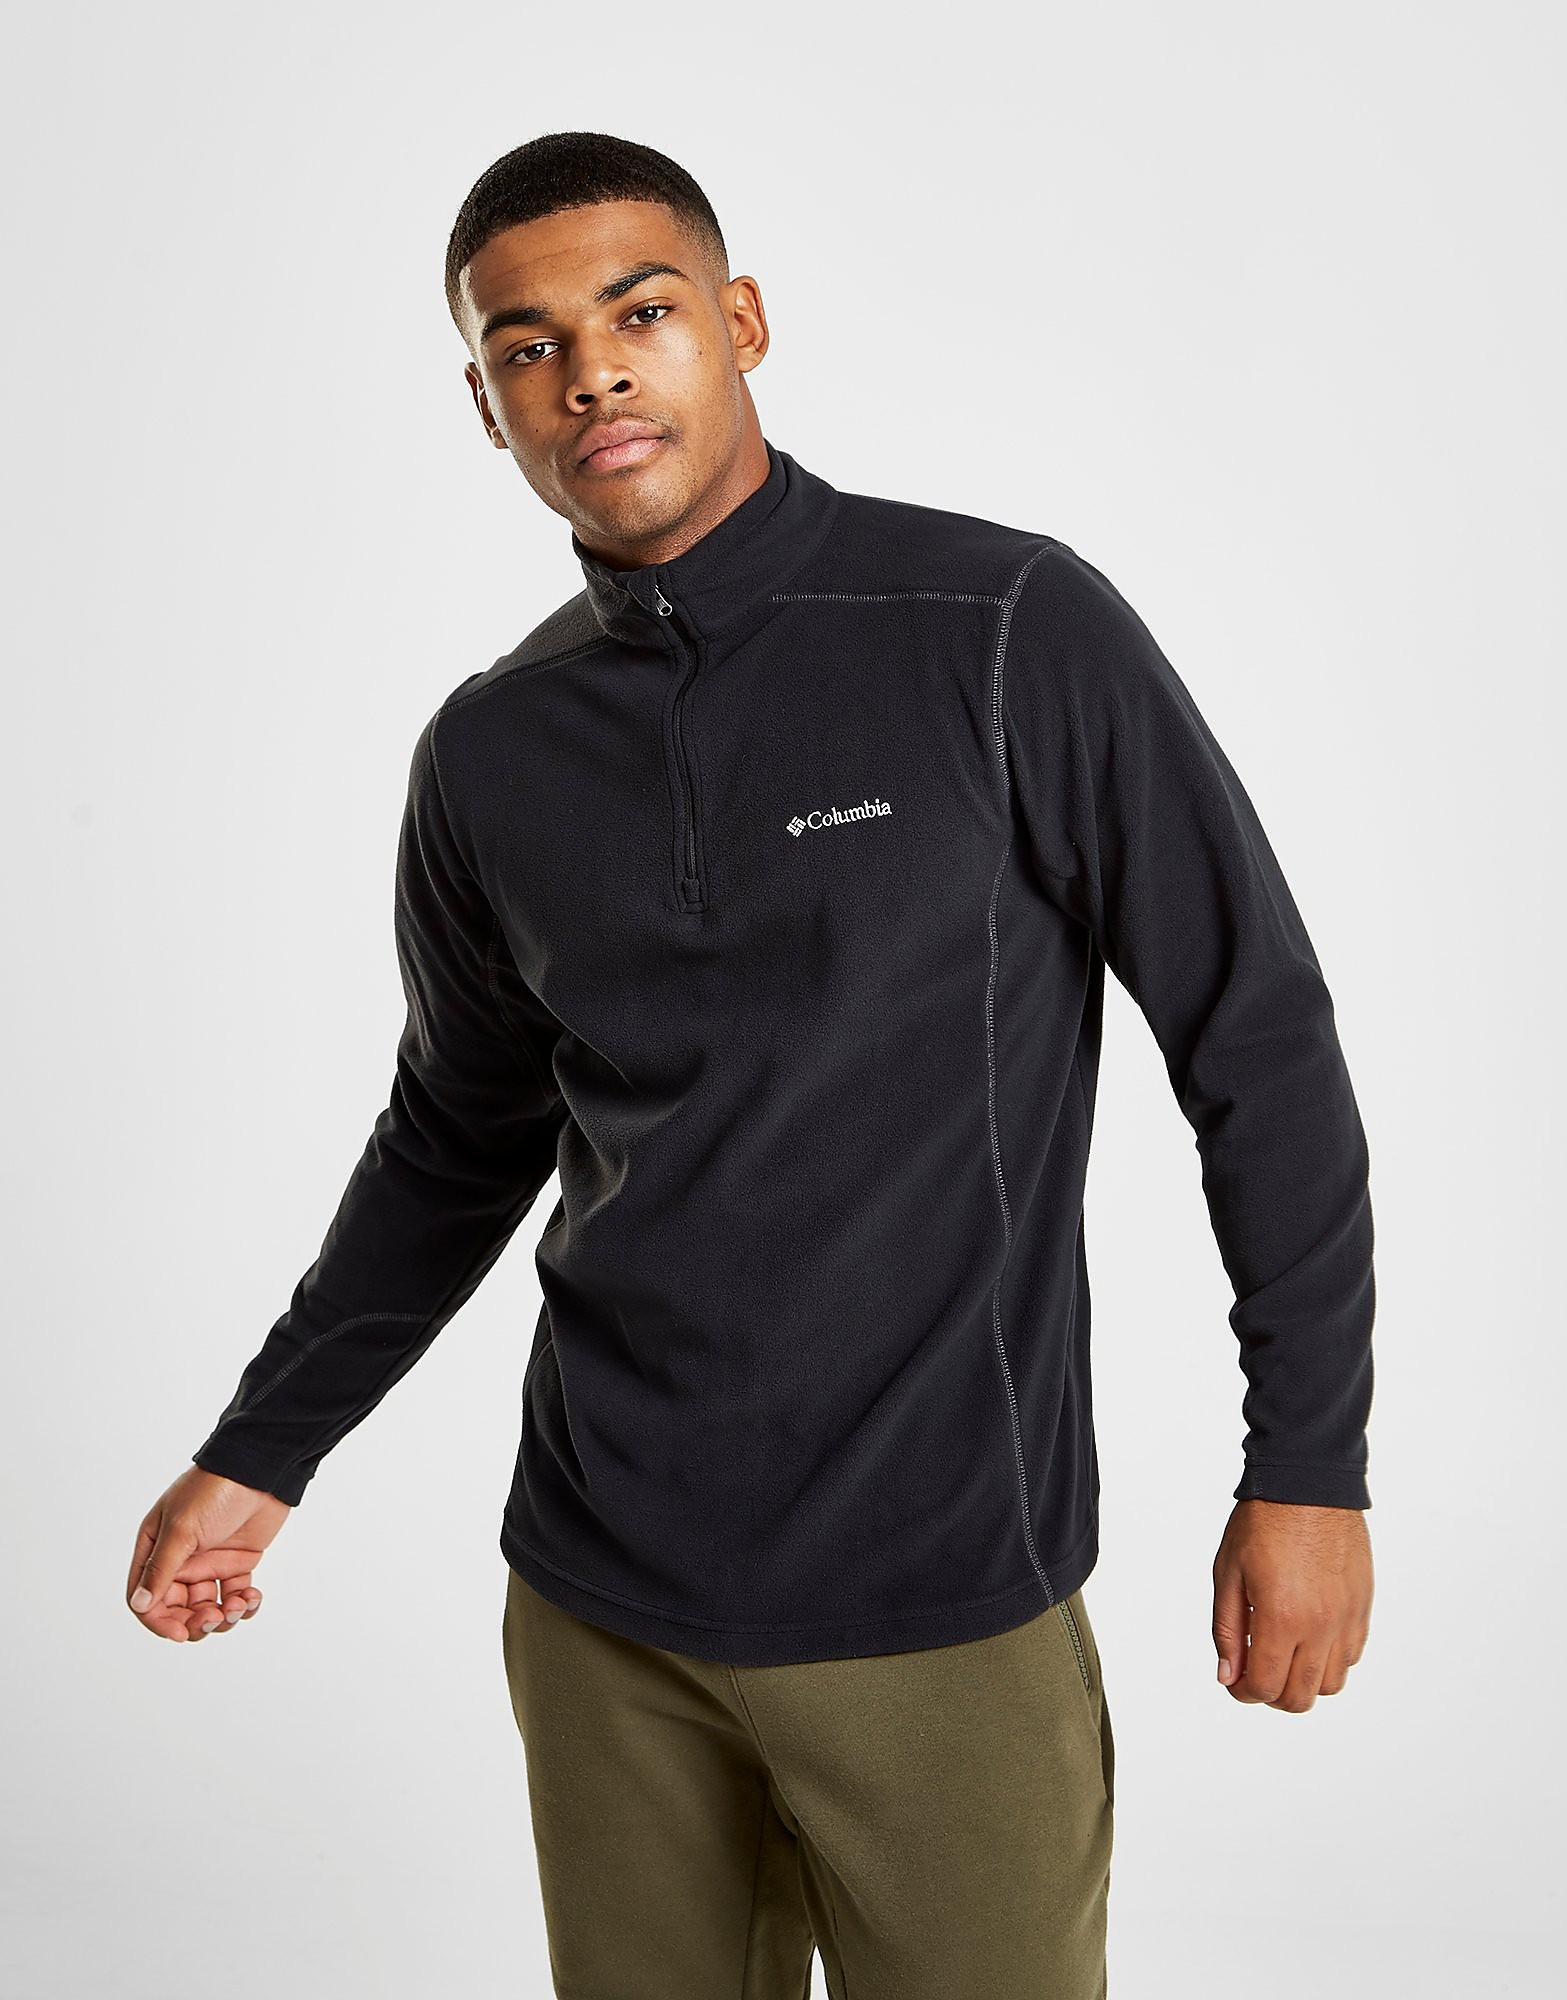 Columbia 1/4 Zip Micro Fleece Top Heren - Zwart - Heren